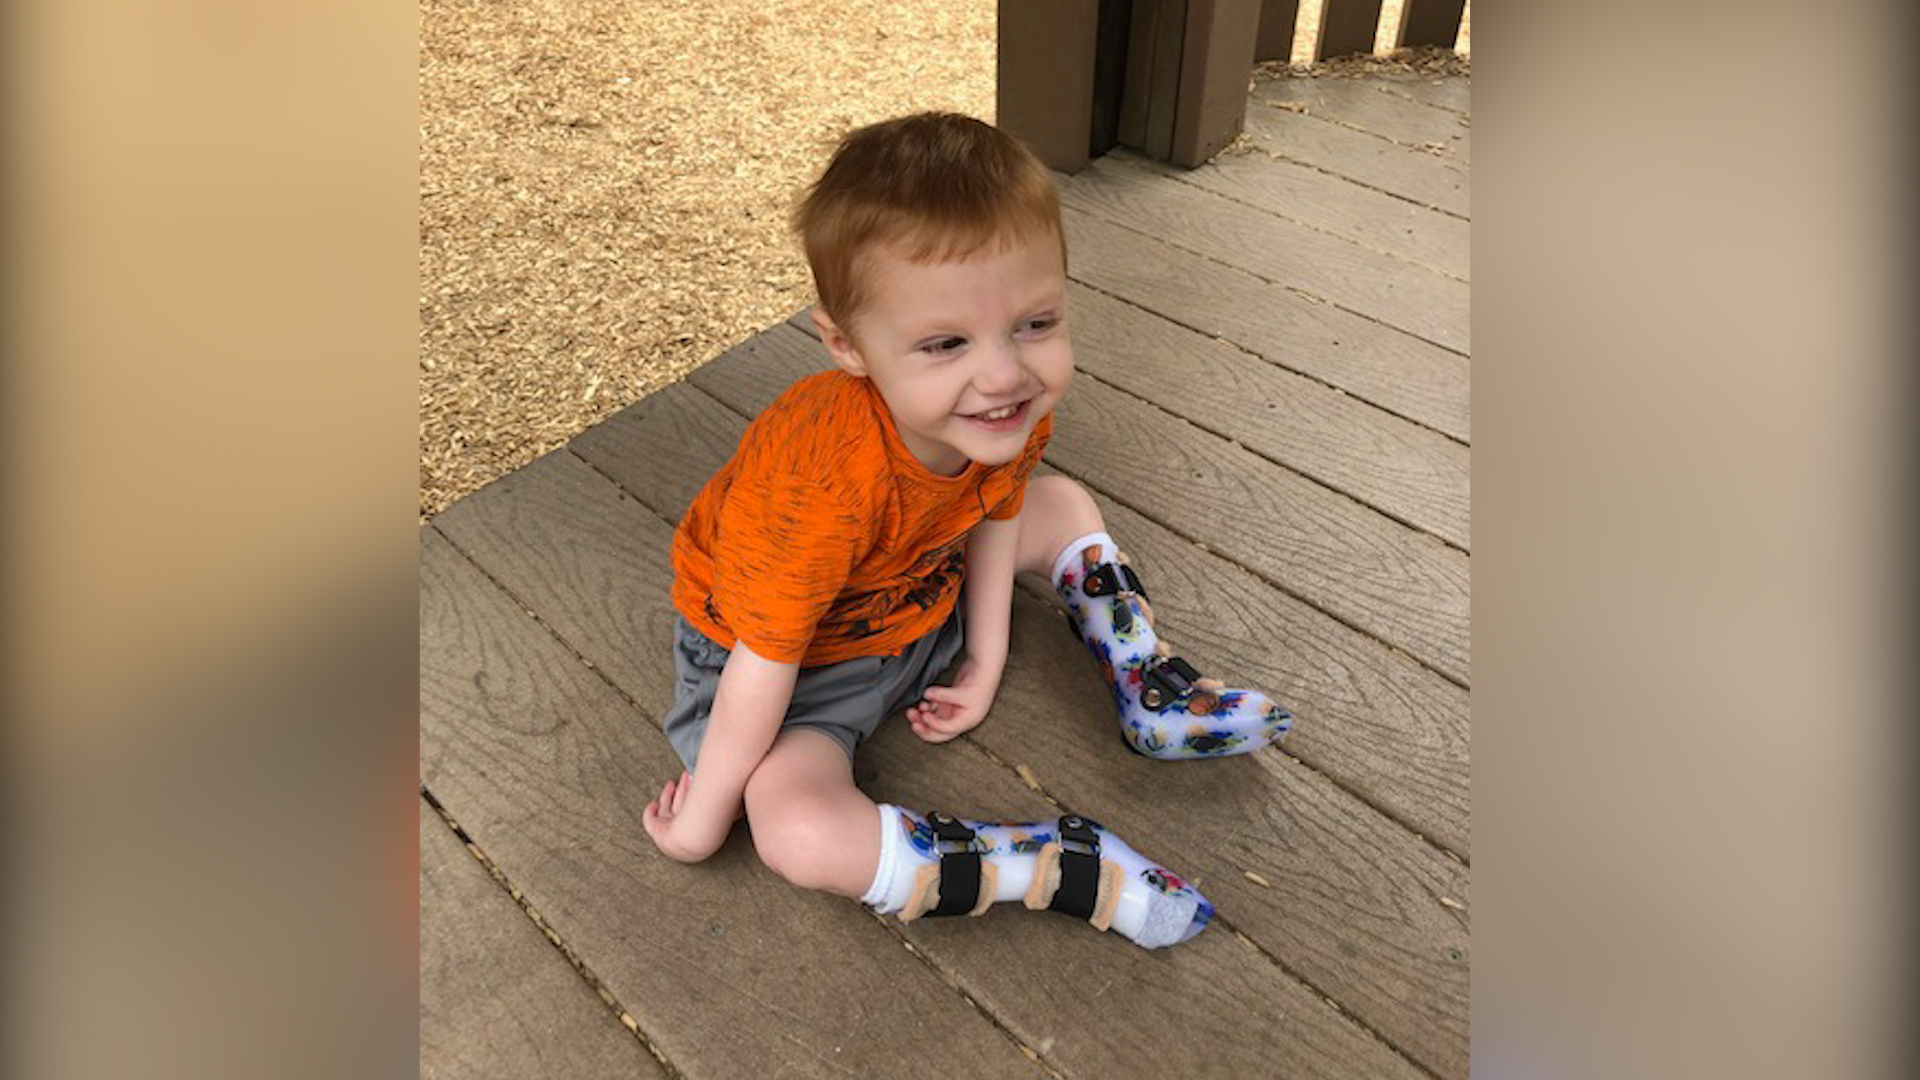 One Wichita Falls family is hoping for a blessing this new year that could help their son walk independently for the first time in his life.